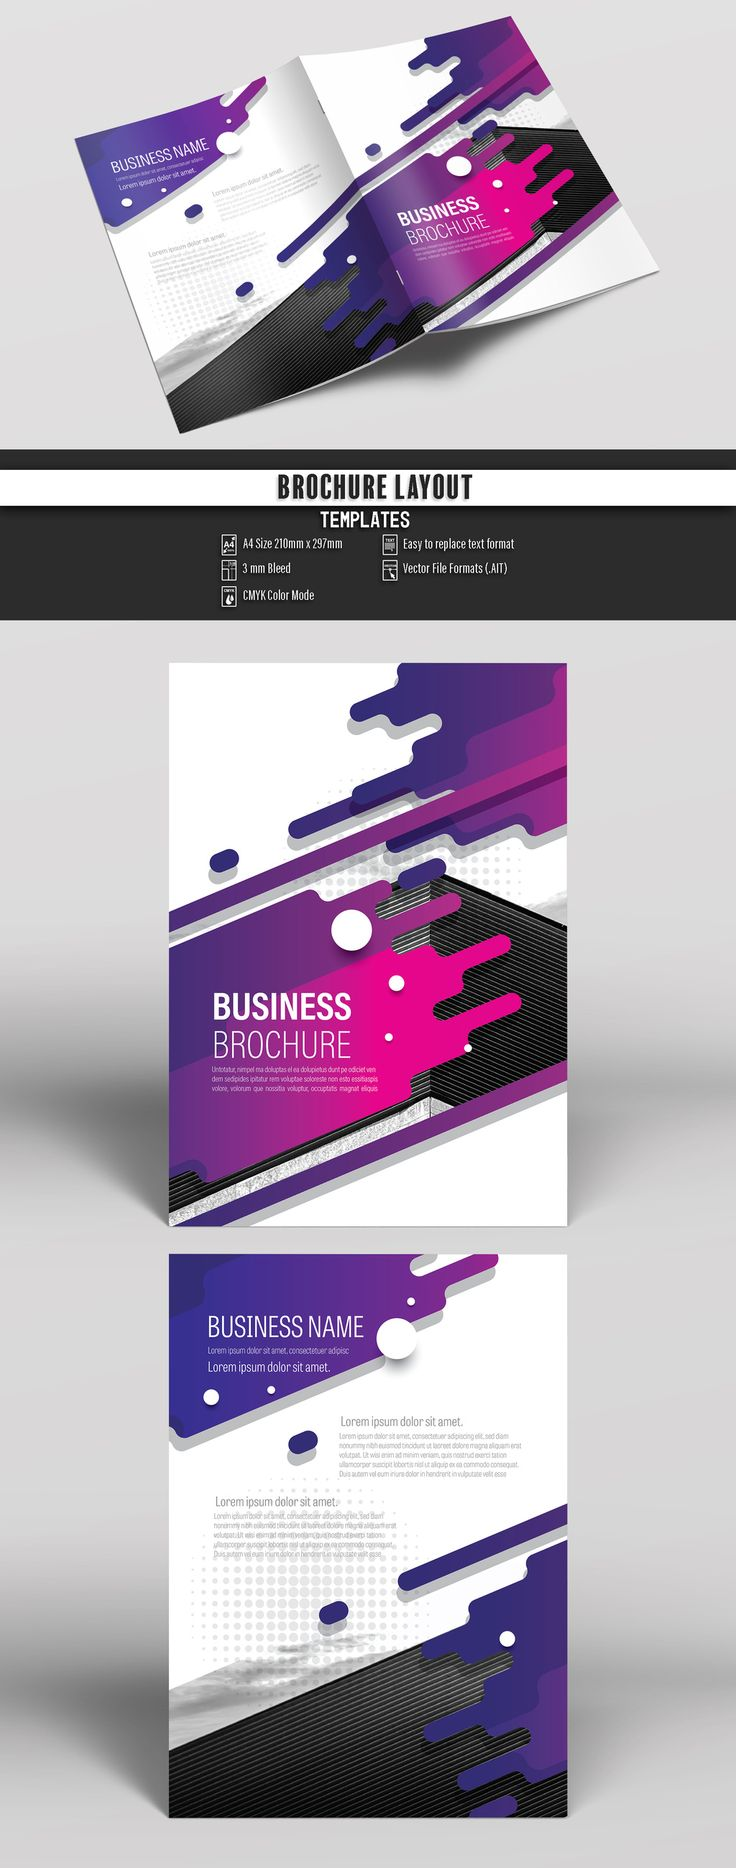 Brochure Cover Layout with Purple Splash Design 1. Buy this stock template and explore similar templates at Adobe Stock | Adobe Stock #Brochure #Business #Proposal #Booklet #Flyer #Template #Design #Layout #Cover #Book #Booklet #A4 #Annual #Report| Brochure template | Brochure design template | Flyers | Template | Brochures | Flyer Background | Background design | Business Proposal | Proposal Design | Booklet | Professional | Professional - Proposal - Brochure - Template